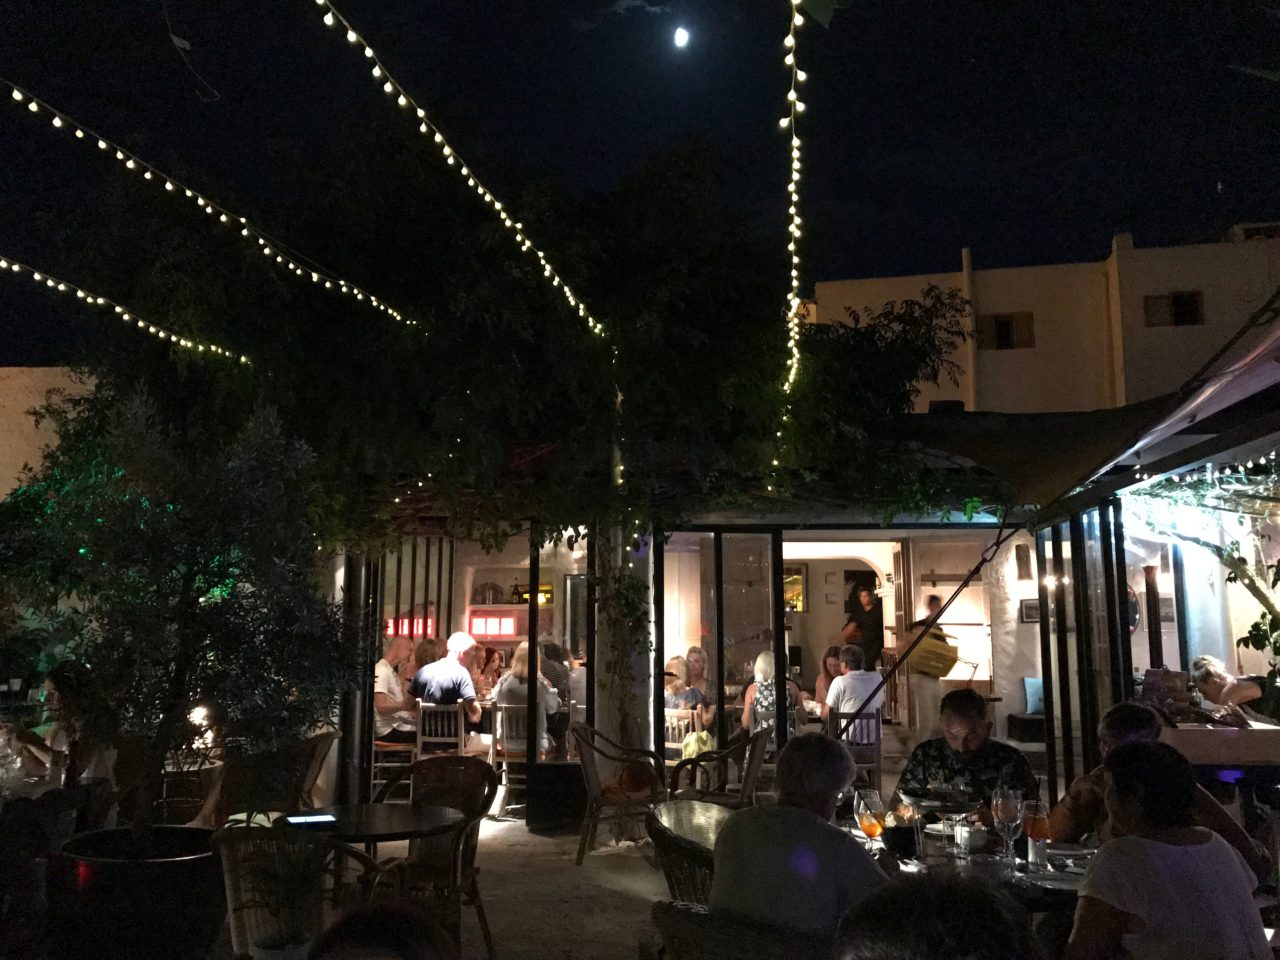 Outside Restaurant With Tables And Guests Under Cozy Lights